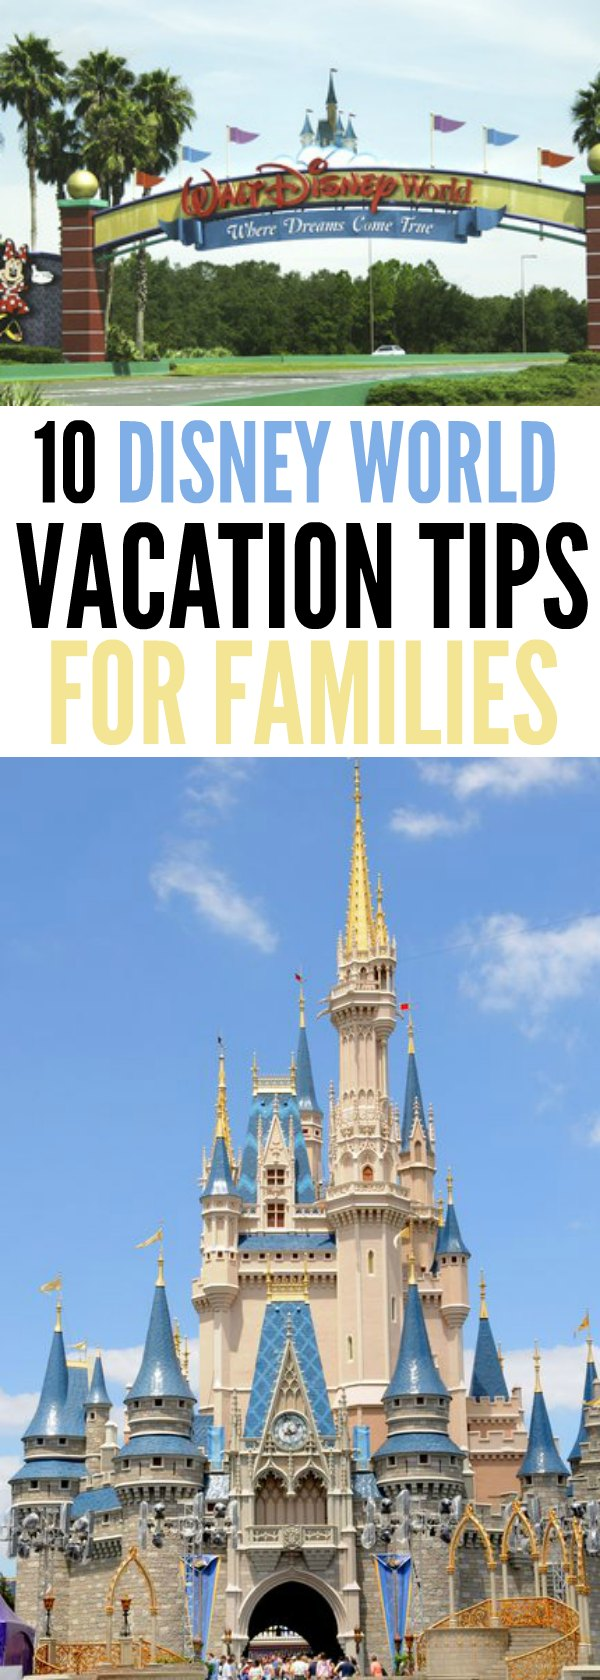 Check out these Disney World vacation tips for families. You will save time and money with these 10 tips making your Disney vacation a success.